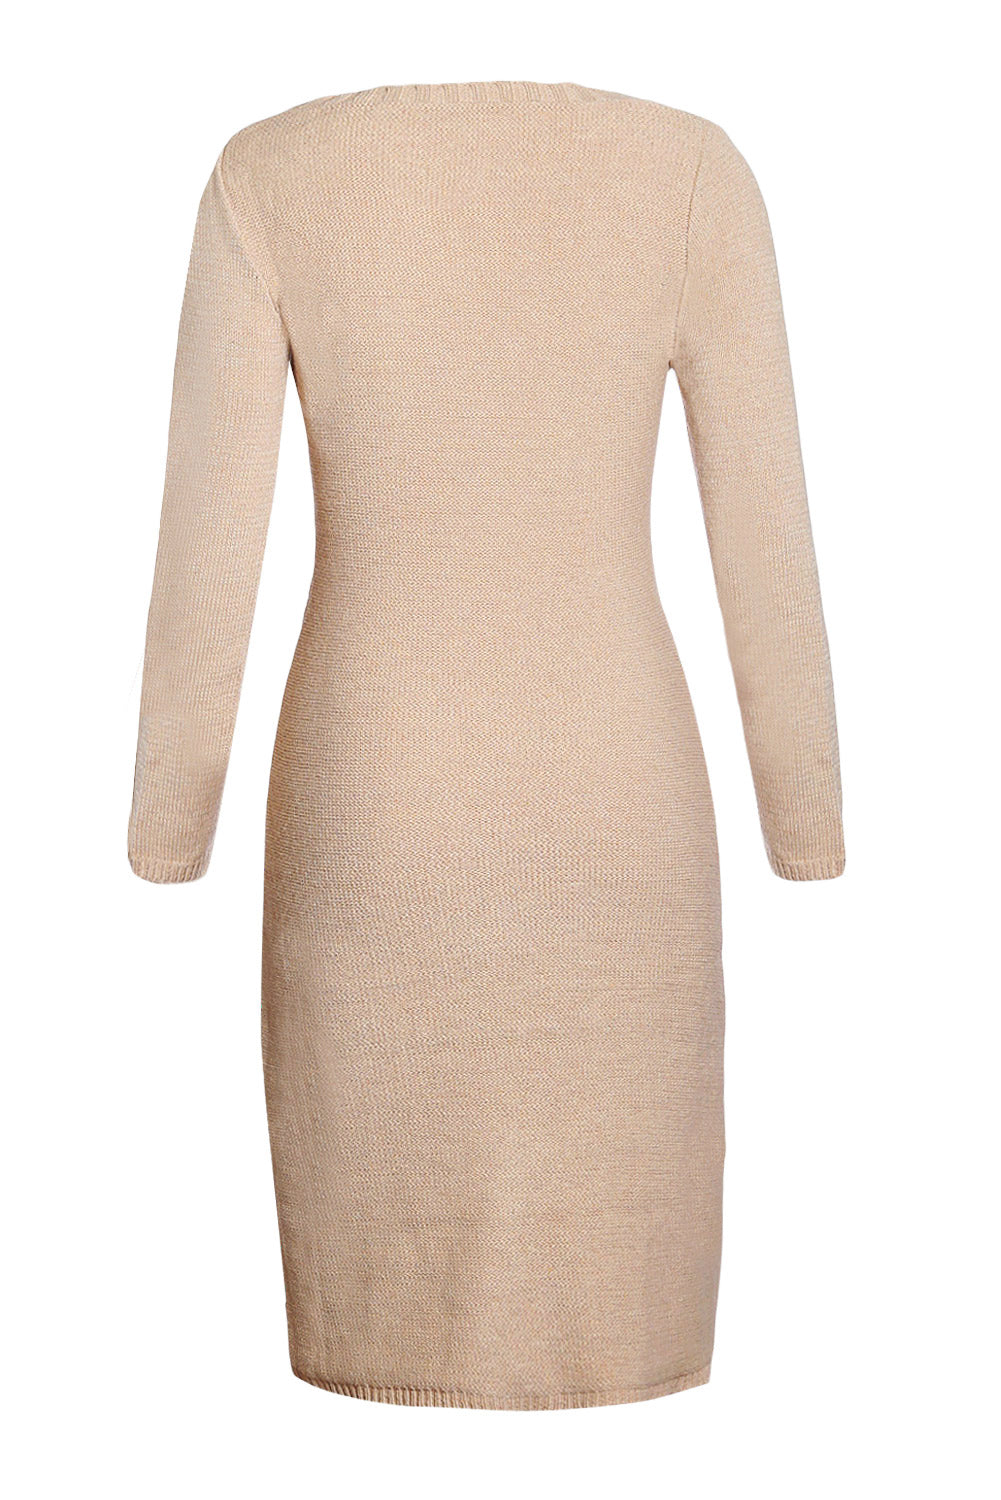 Her Fashion Khaki Women's Hand Knitted Sweater Dress